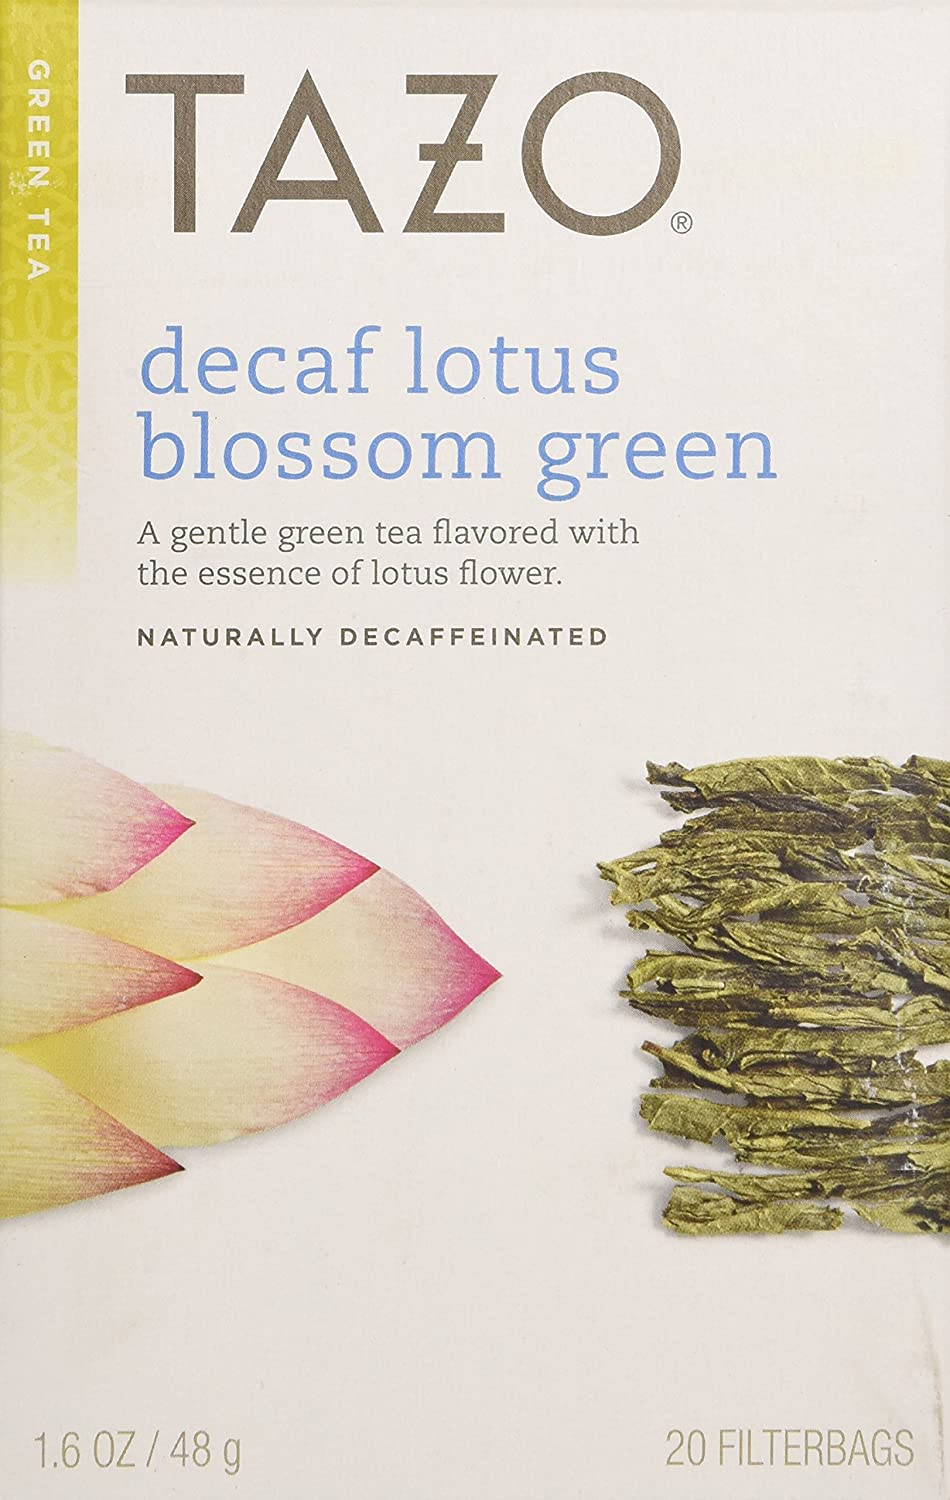 Amazon decaf lotus blossom green fb 20ct6 20 per case on amazon decaf lotus blossom green fb 20ct6 20 per case on case tazos tea green decaf grocery gourmet food izmirmasajfo Image collections